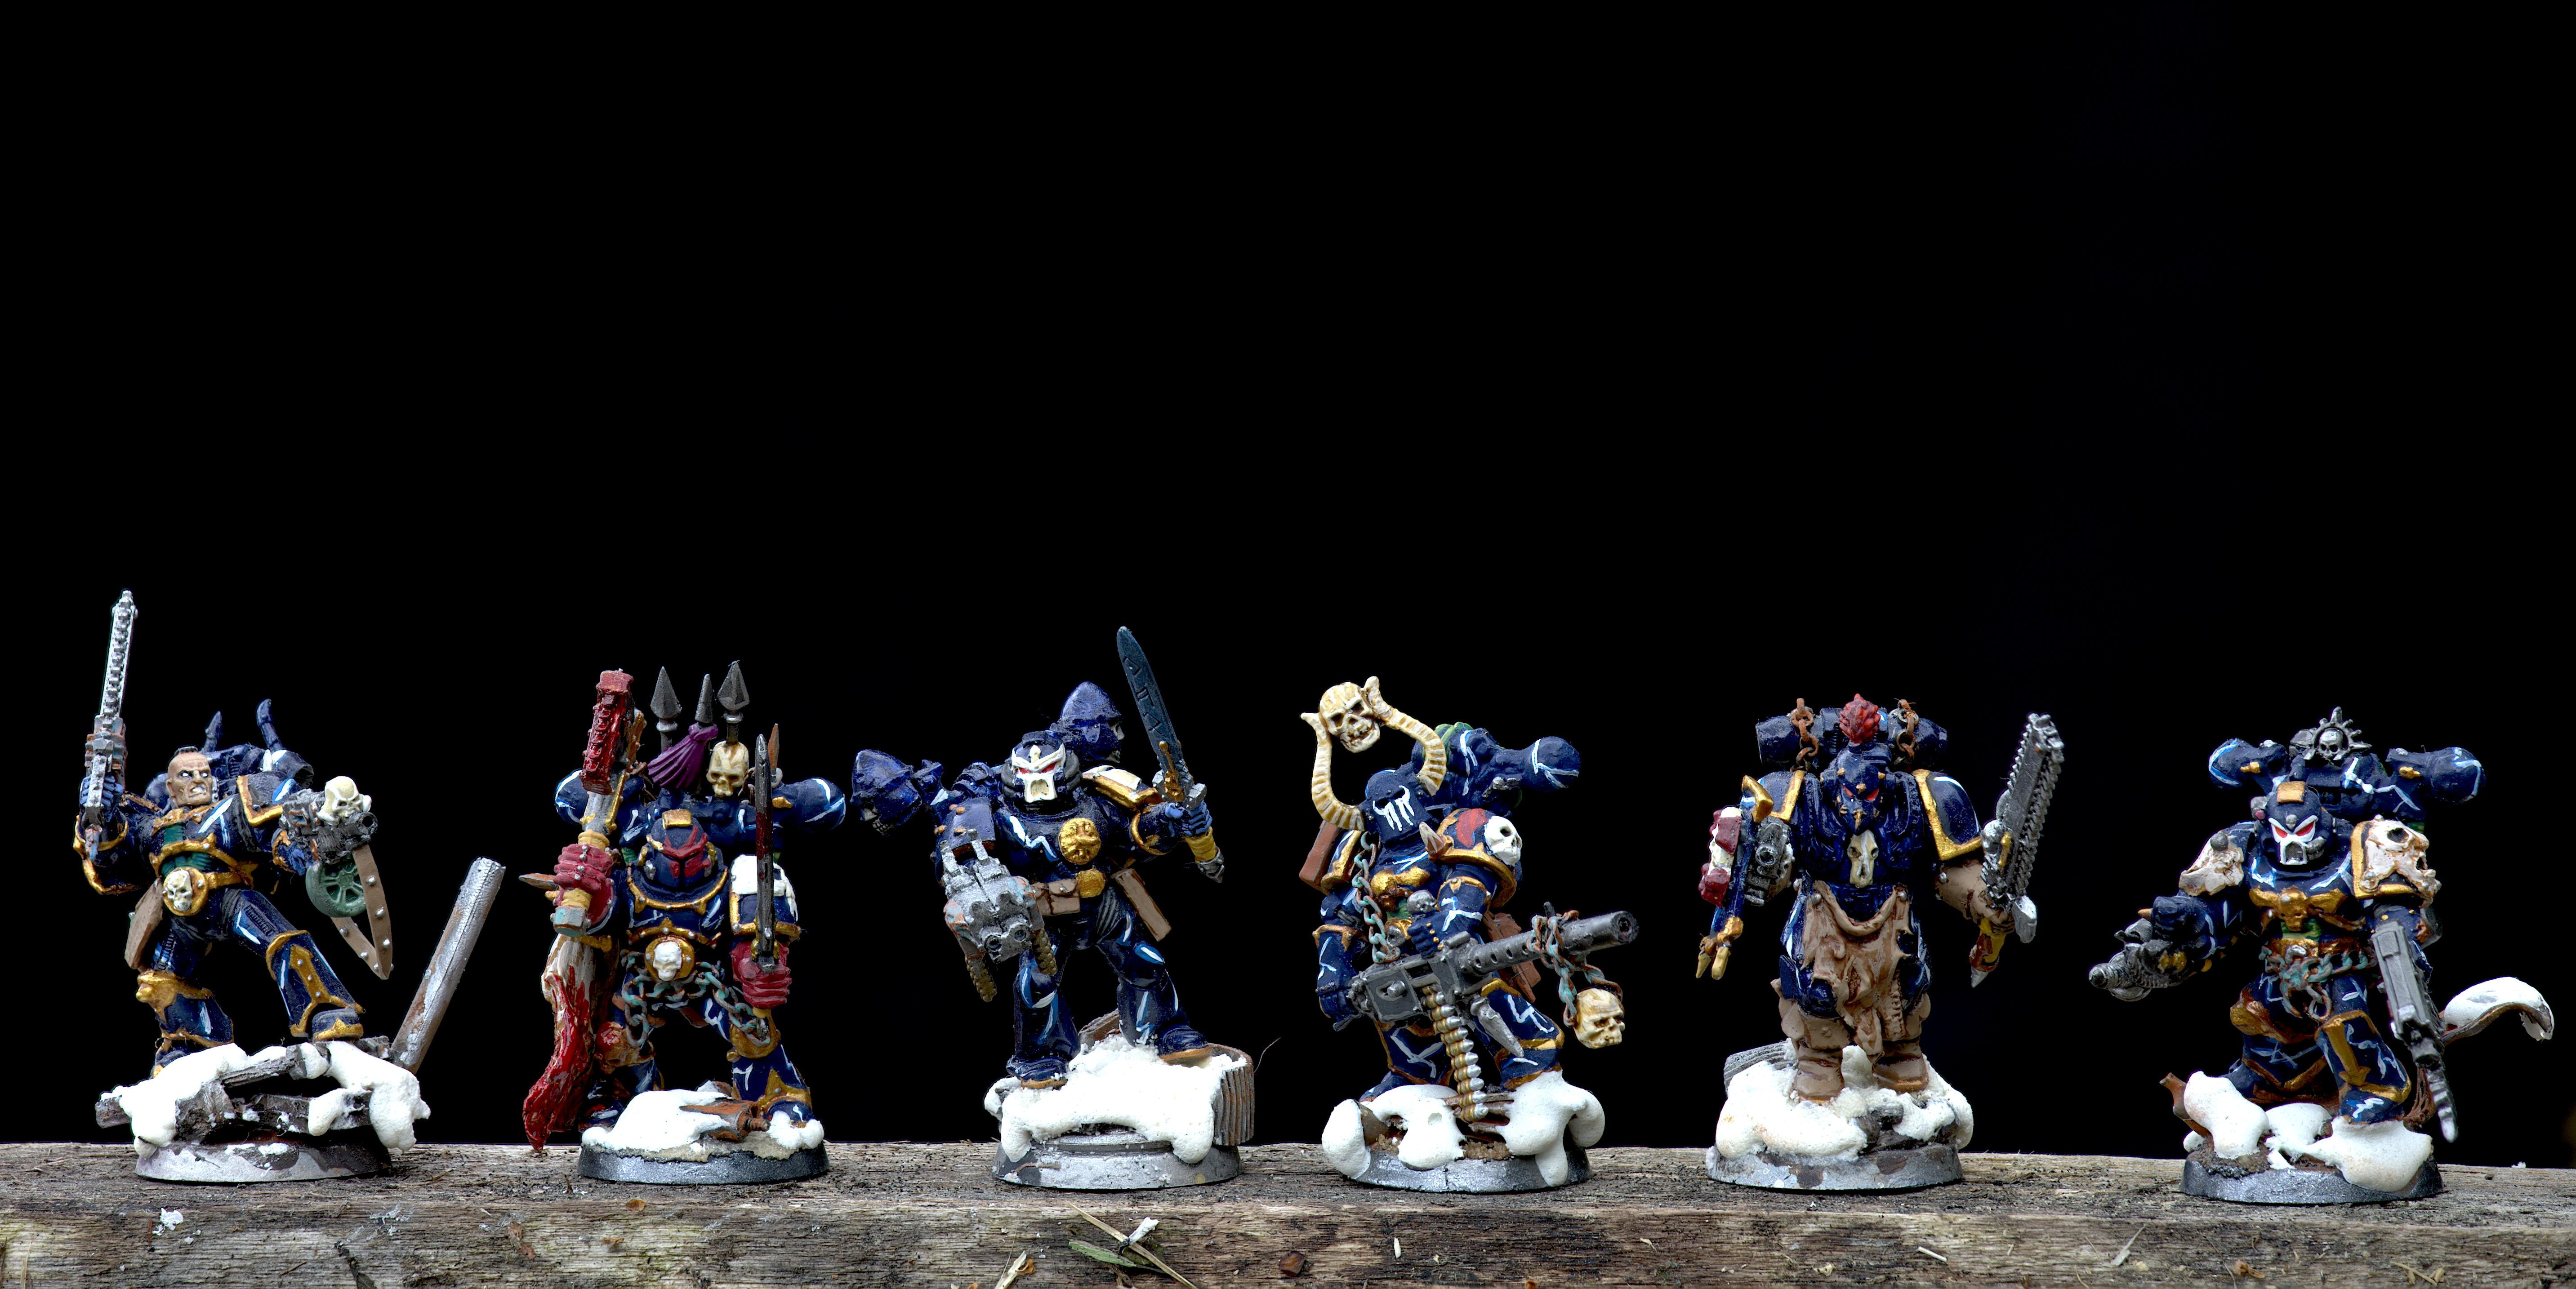 Apothecary, Ave Dominus Nox, Berserk, Berserkers, Berzerk, By Andrey Mishuta, Chaos, Chaos Space Marines, Conversion, Cyrion, Eviscerator, First Claw, Havoc, Heretic Astartes, Kitbash, M.a.k., Mercutian, Night Lords, Outdoors, Regiment, Snow, Talos Valcoran, Trophy, Uzas, Variel, Warhammer 40,000, Xarl